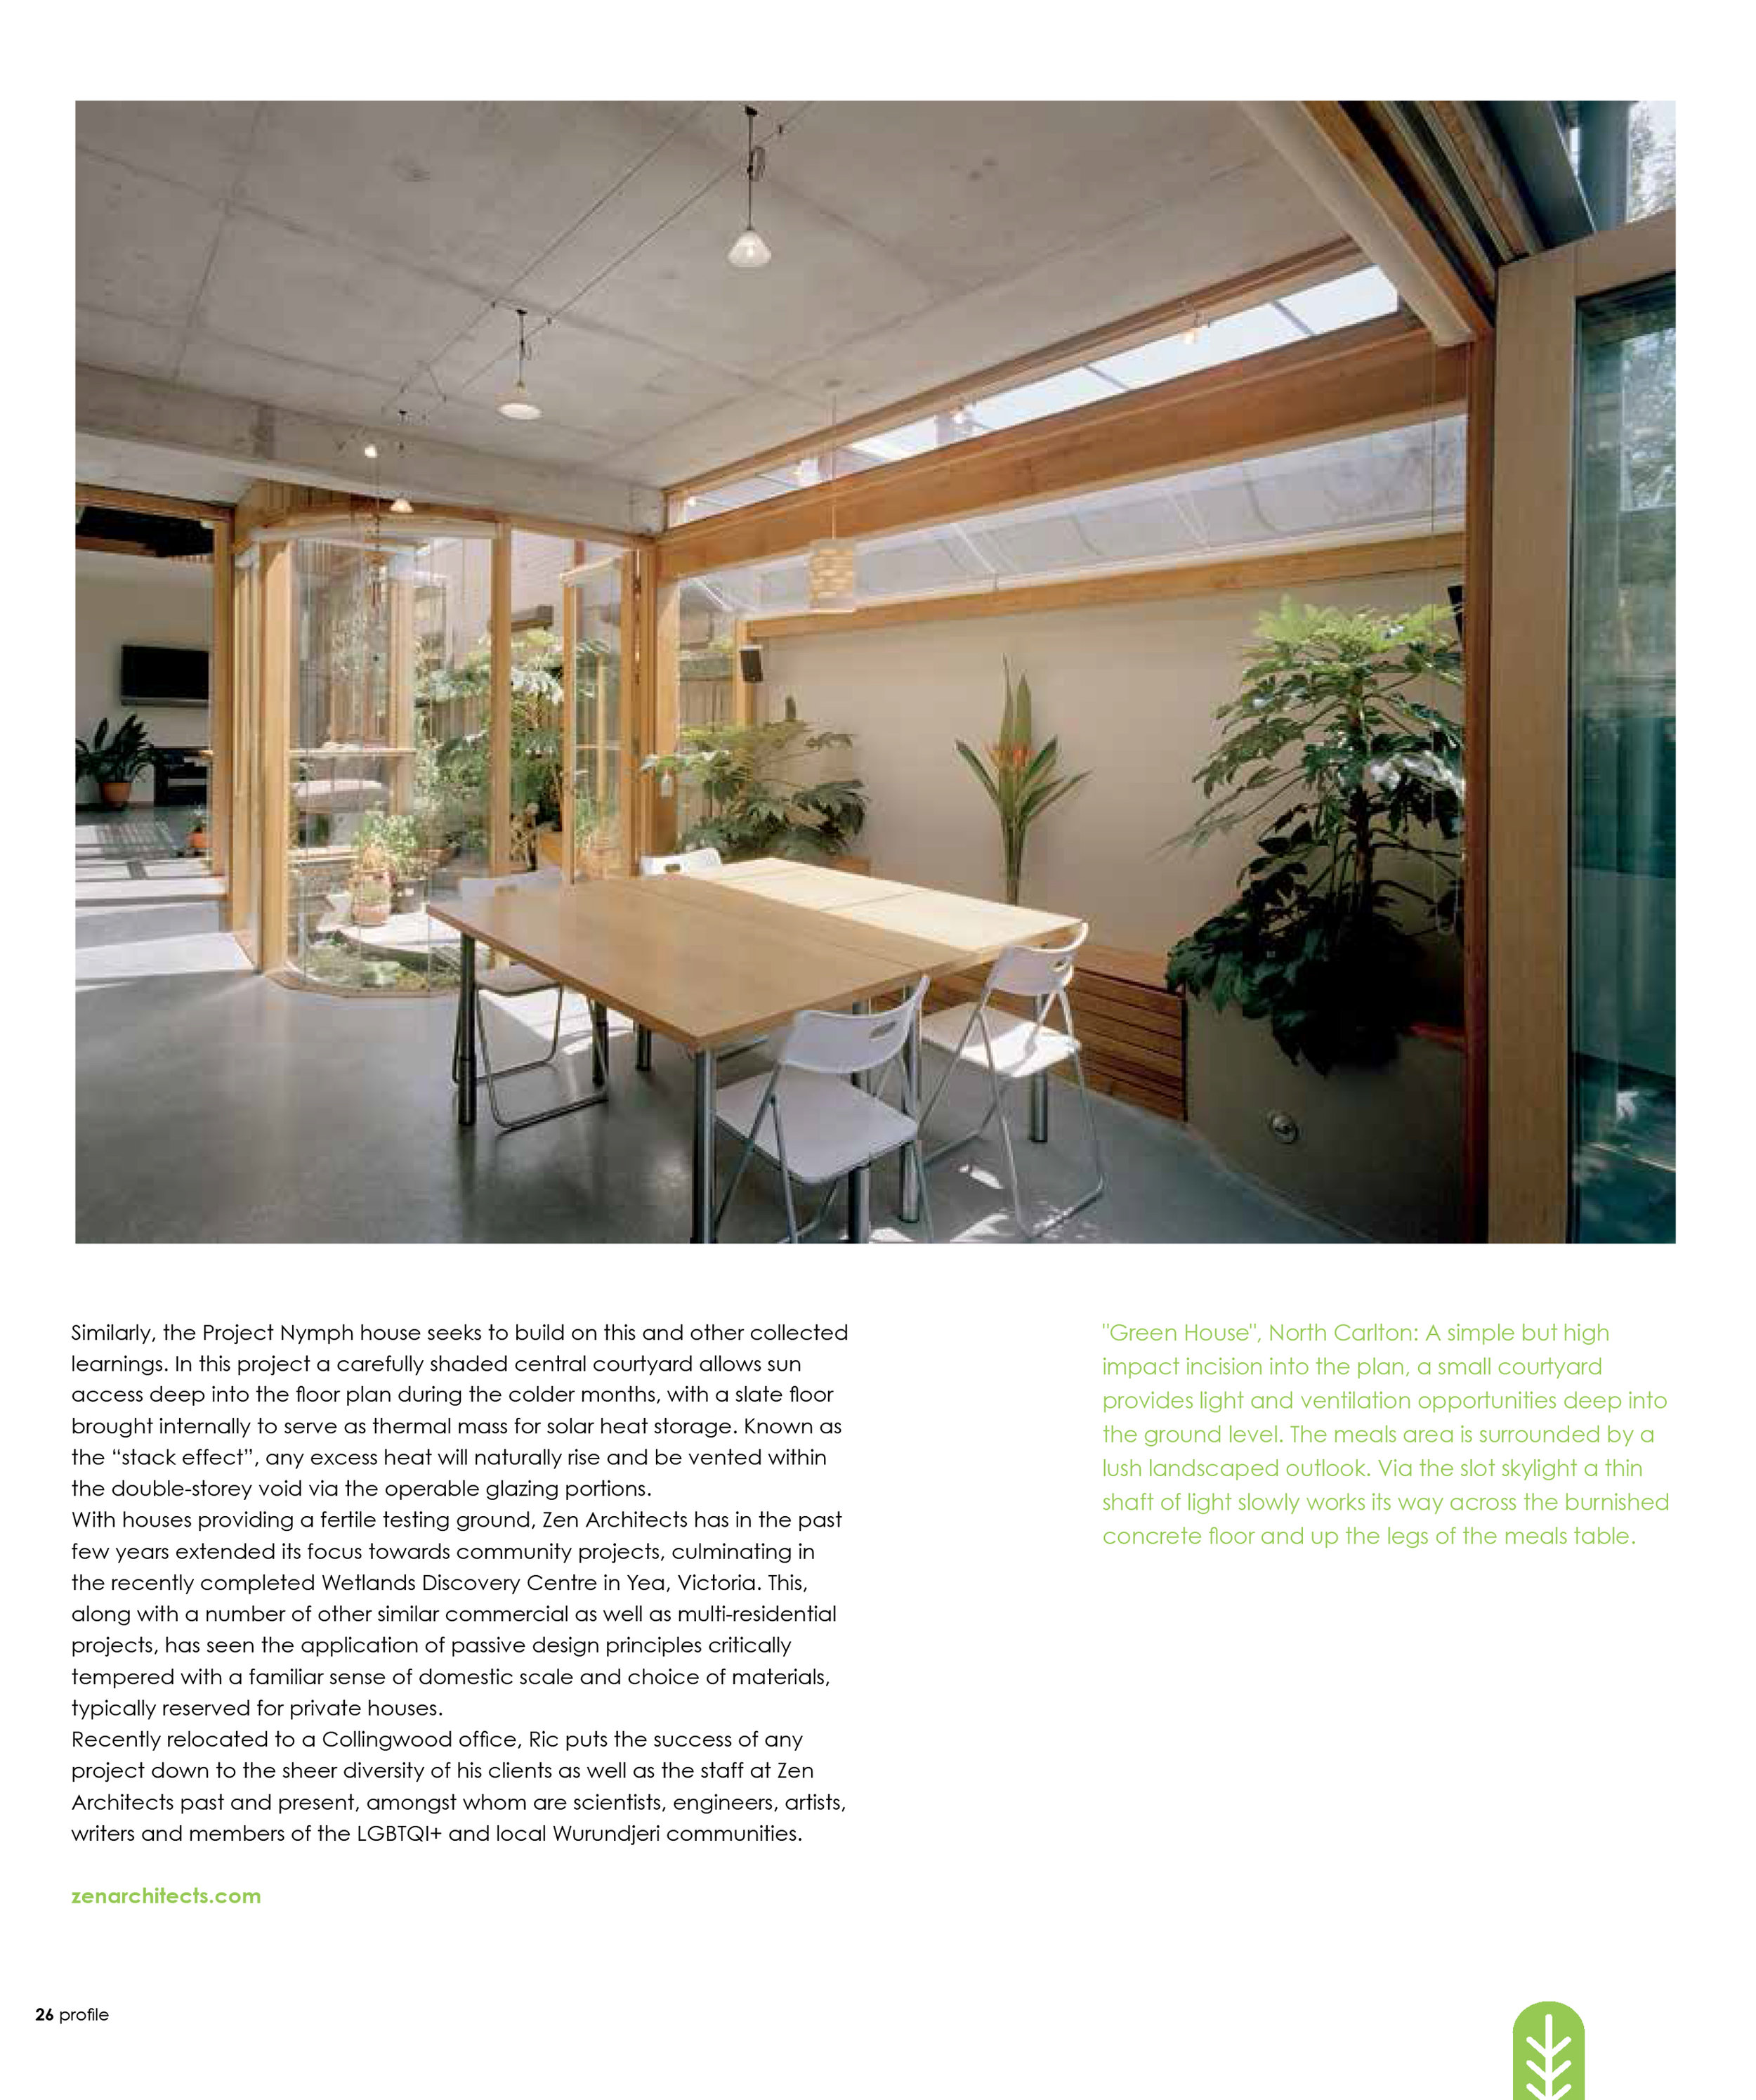 2019_Green Magazine_Profile_Article-5.jpg